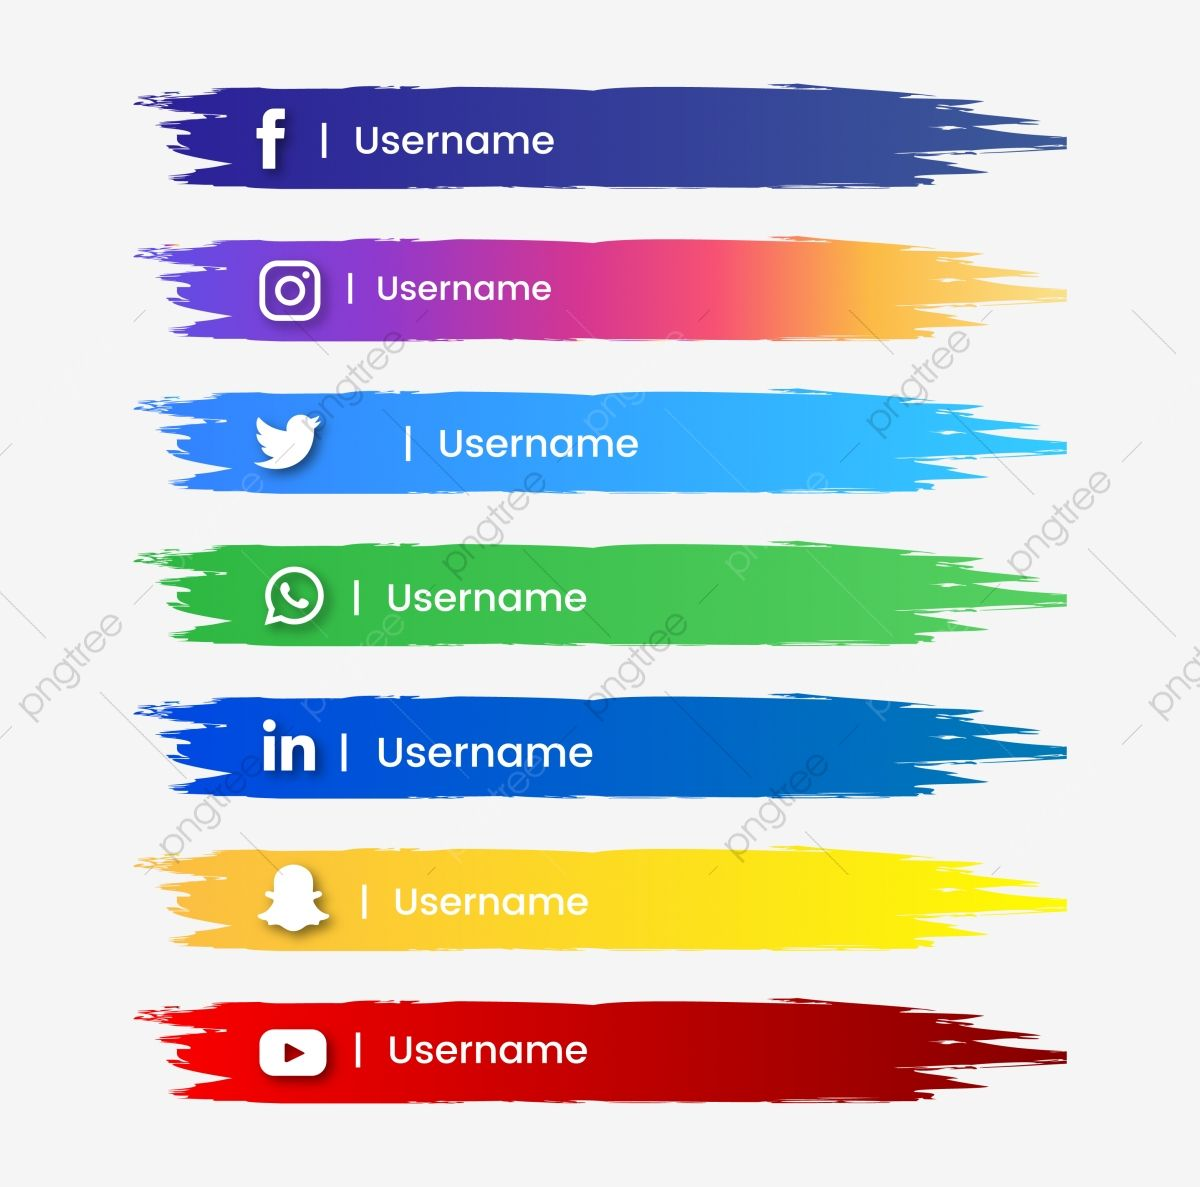 Social Media Button Abstract Brush Stroke And Color Gradient Social Media Clipart Social Media Png And Vector With Transparent Background For Free Download Social Media Buttons Graphic Design Background Templates Social